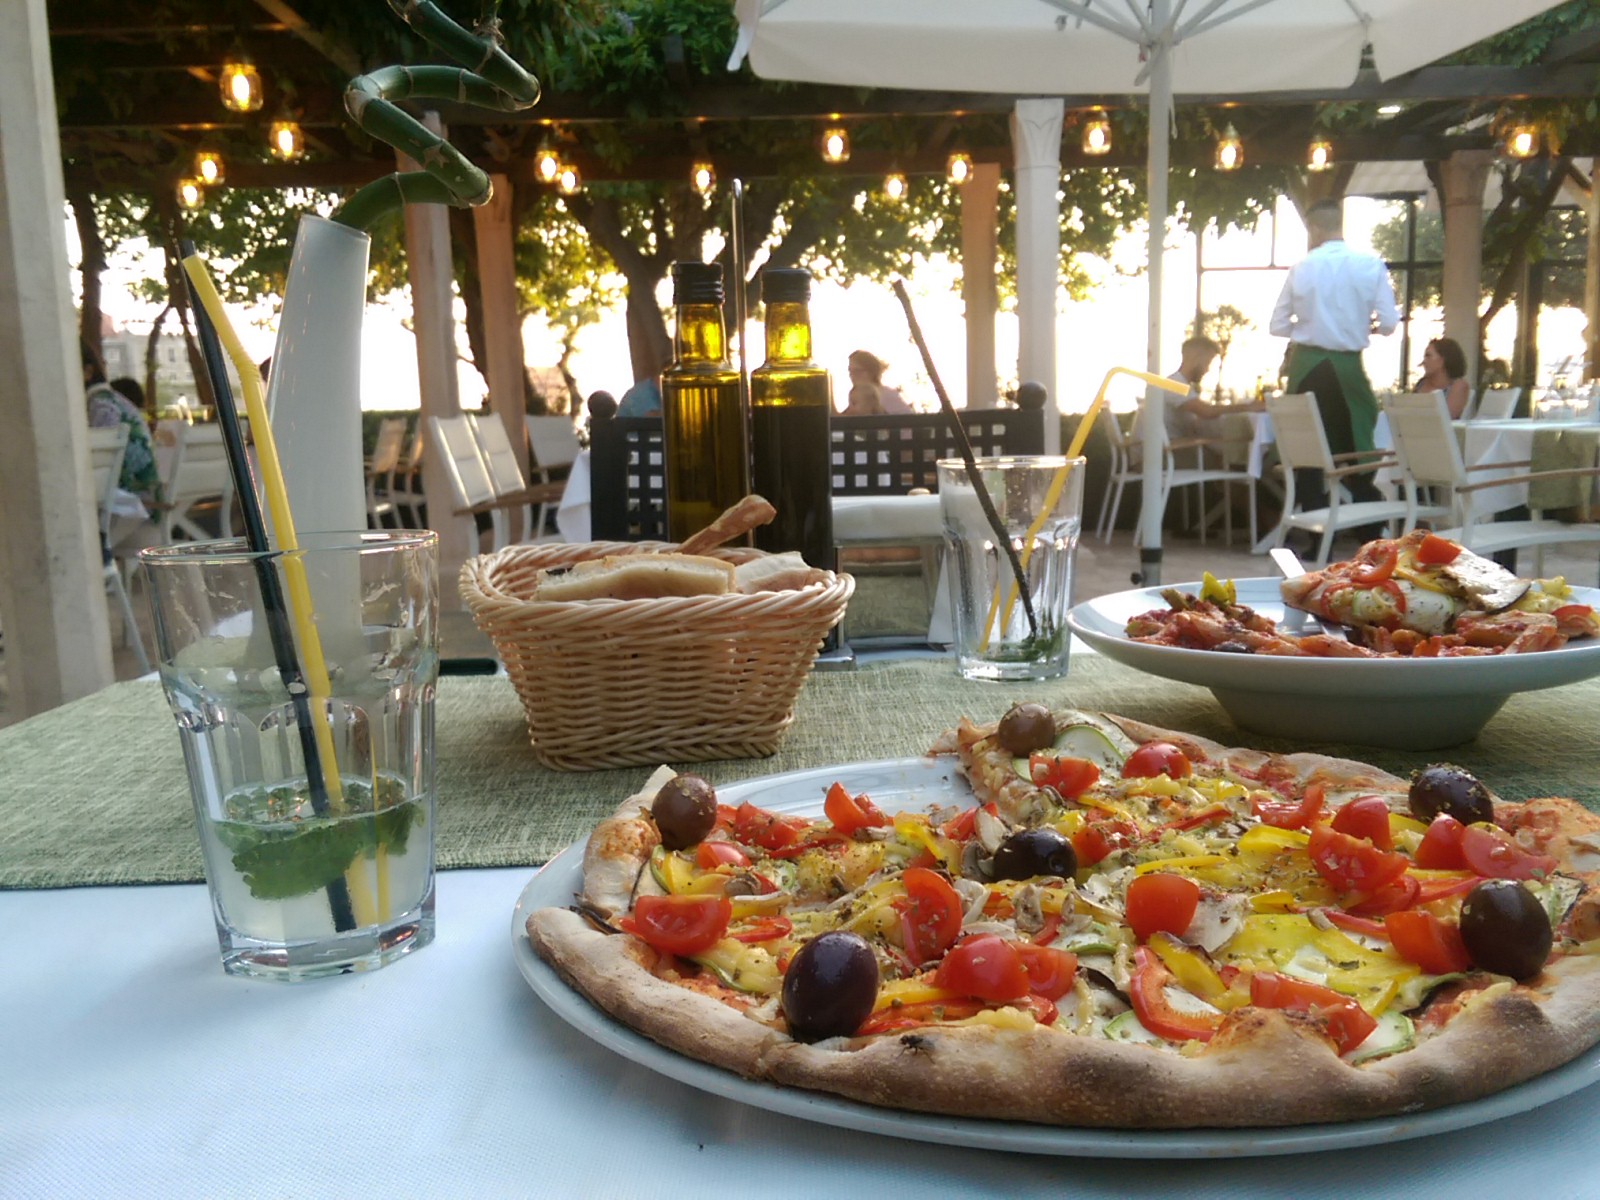 A pizza in the foreground by a mostly finished glass of mint lemonade, and a fancy restaurant with plants and lights in the background